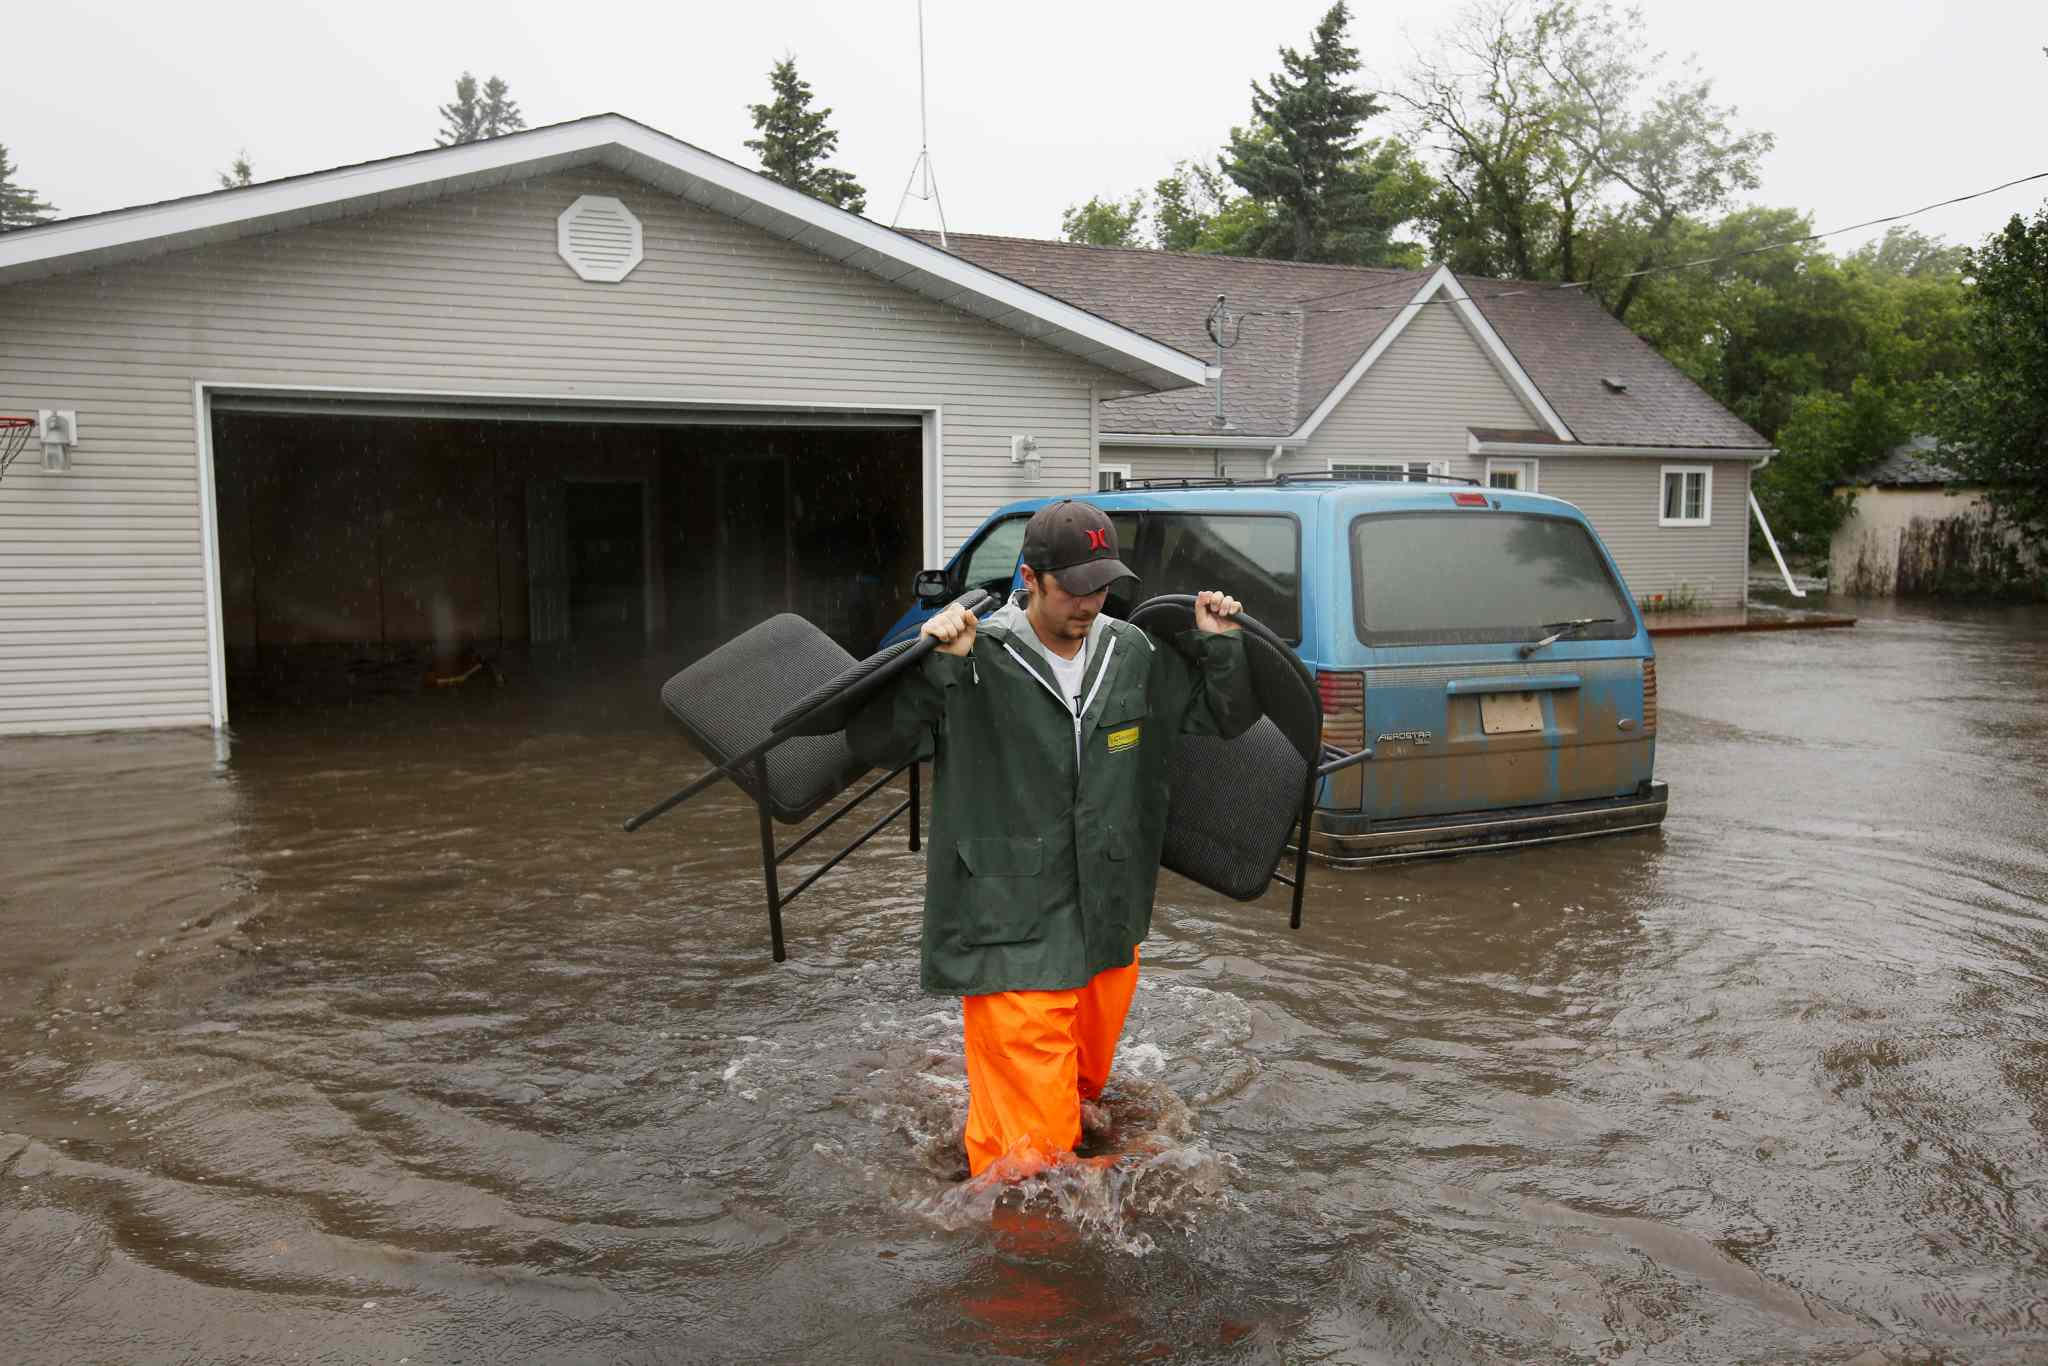 Christian Jeanes carries chairs out of his neighbour's flooded home to a waiting trailer in the village of Cromer in southwestern Manitoba on Sunday. Incessant rainfall over the weekend caused forced the evacuation of approximately 30 residents.